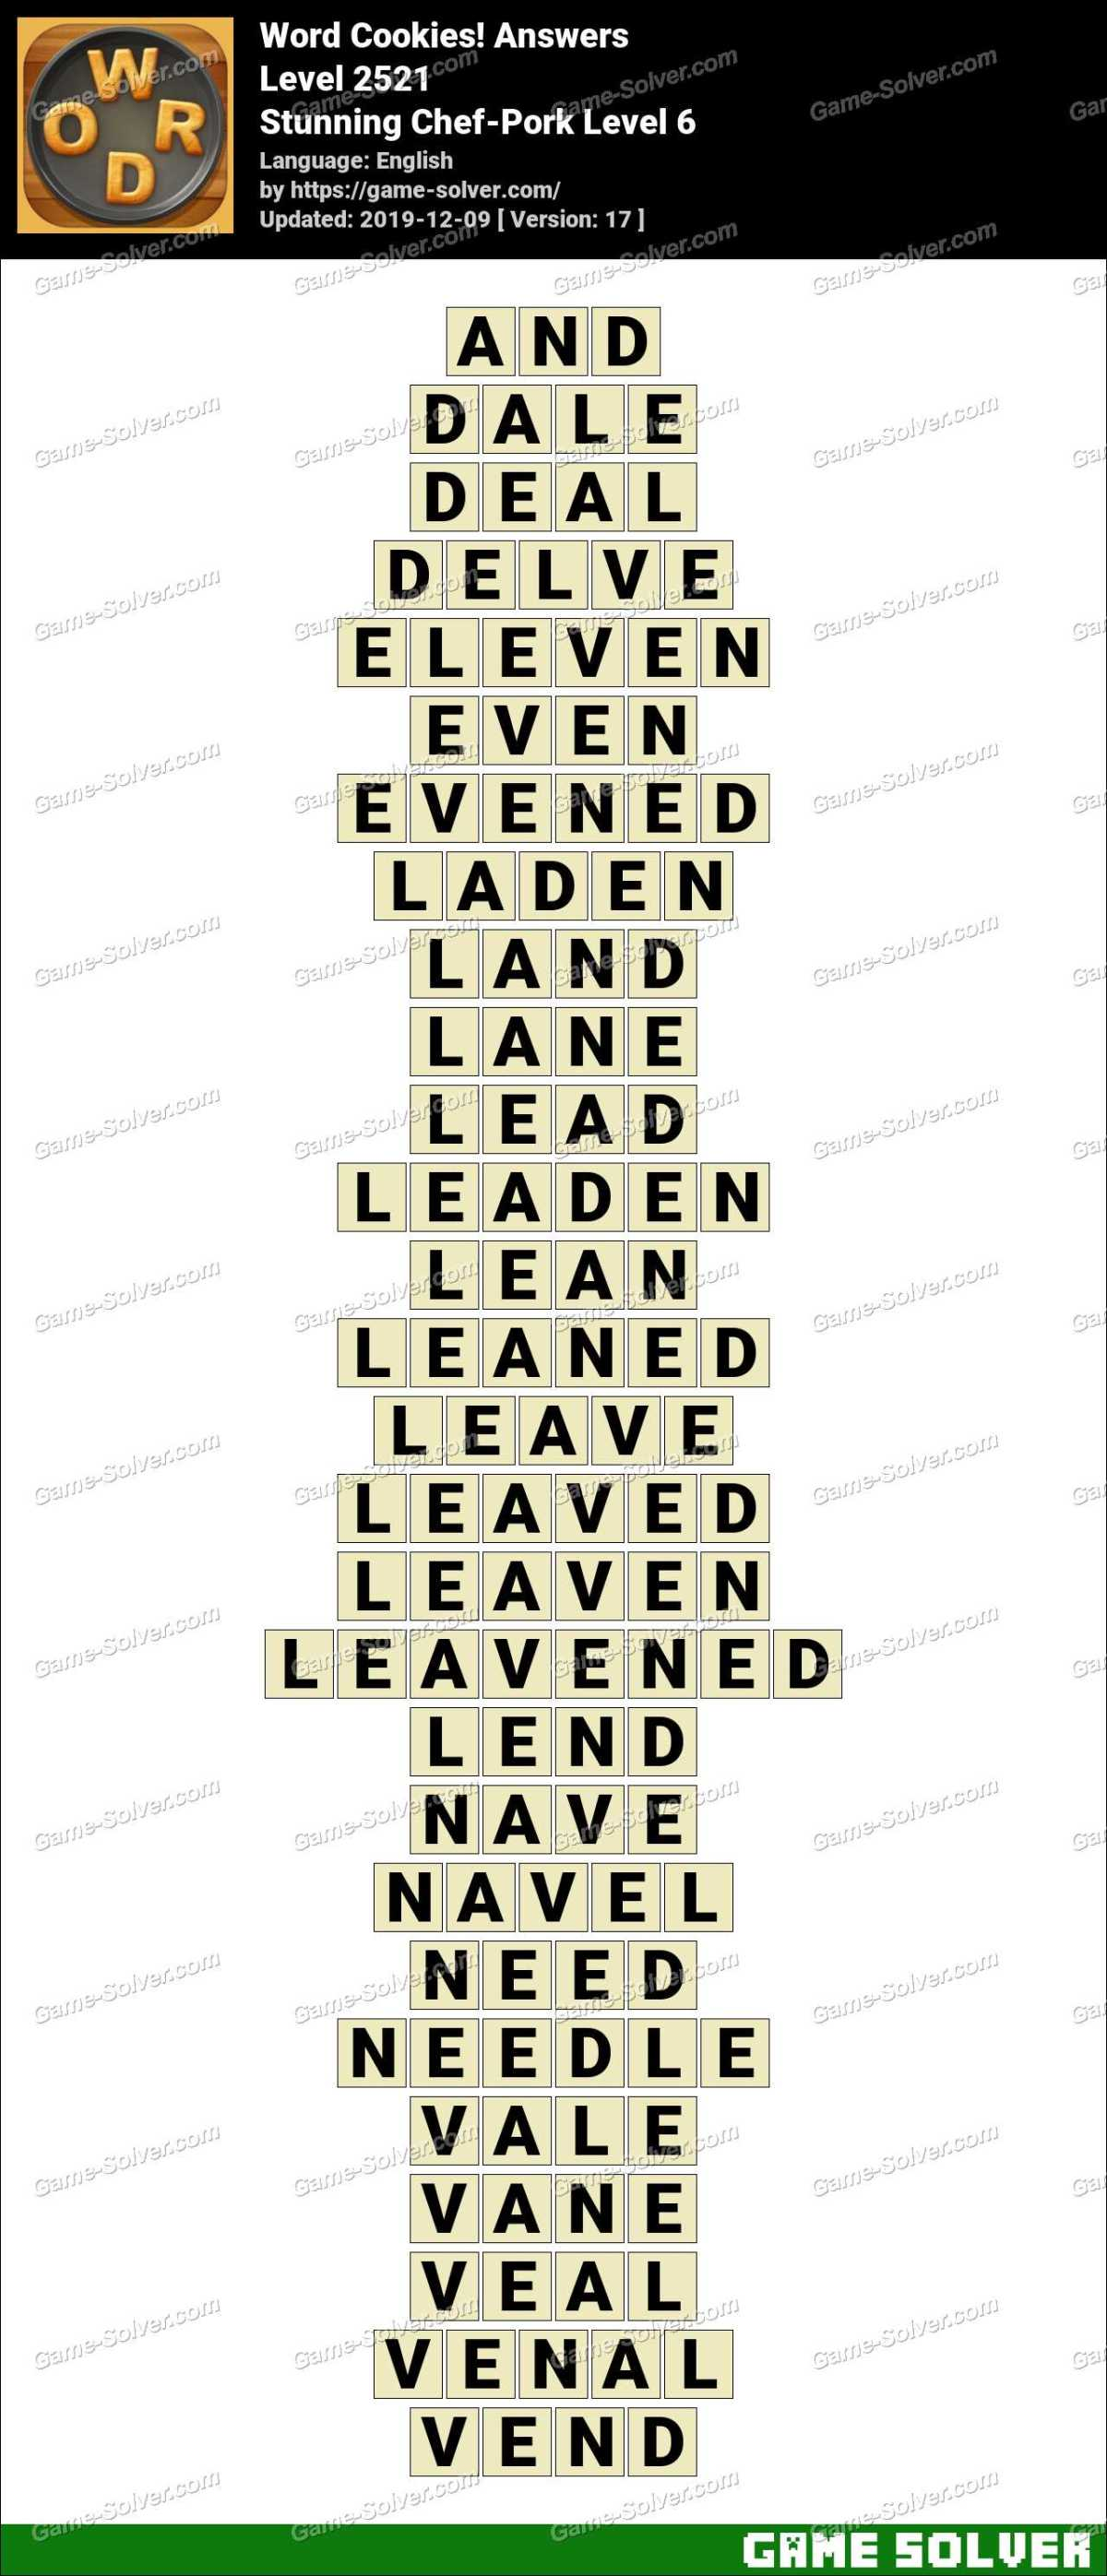 Word Cookies Stunning Chef-Pork Level 6 Answers